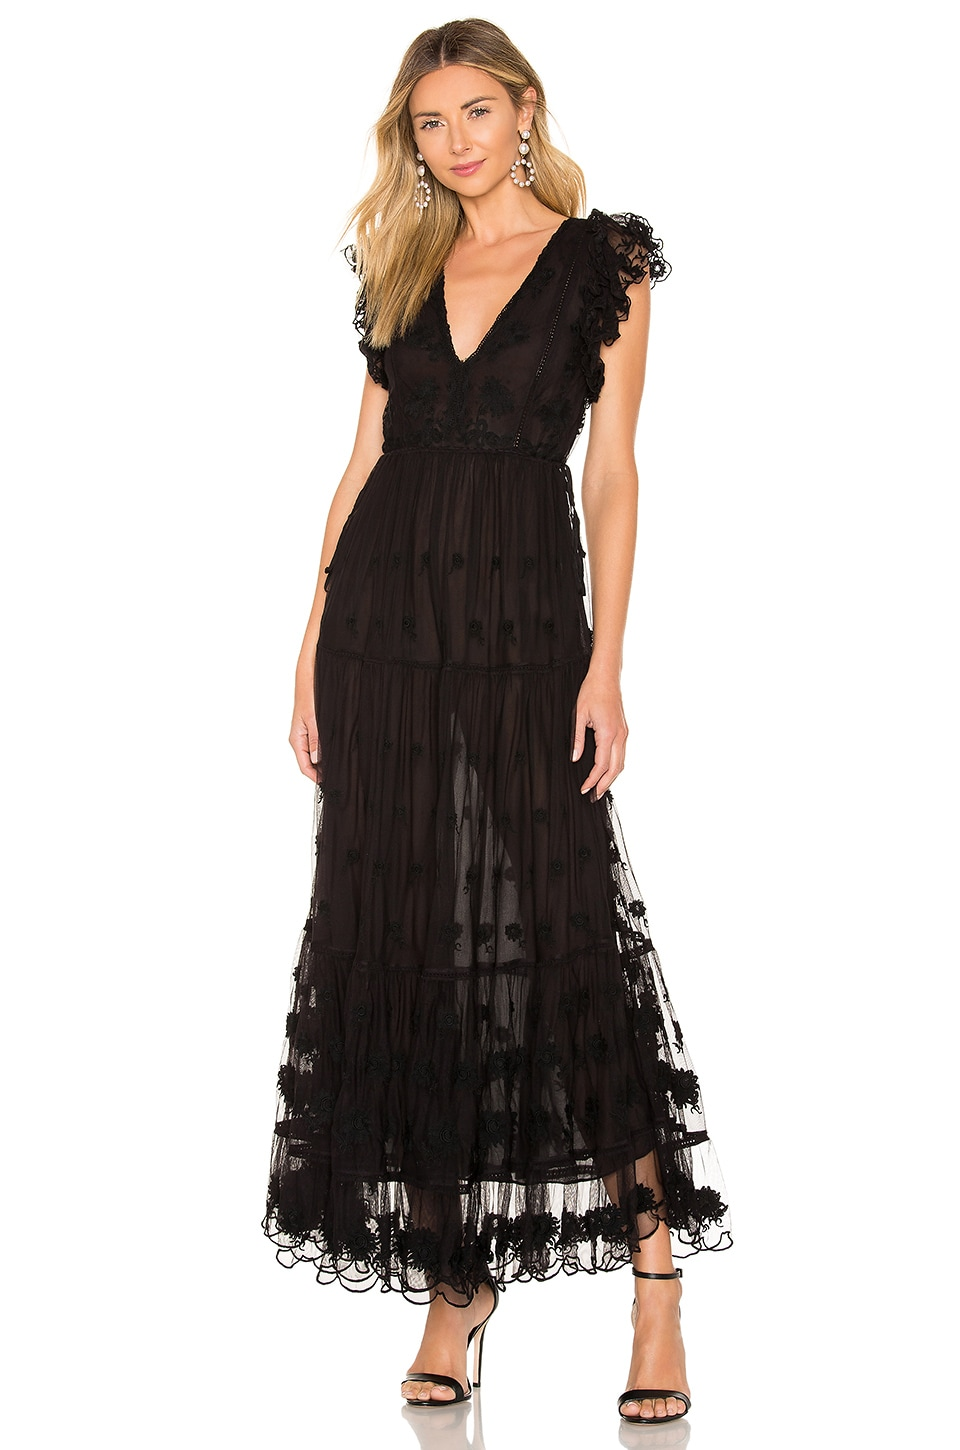 Ulla Johnson Fifi Dress in Raven